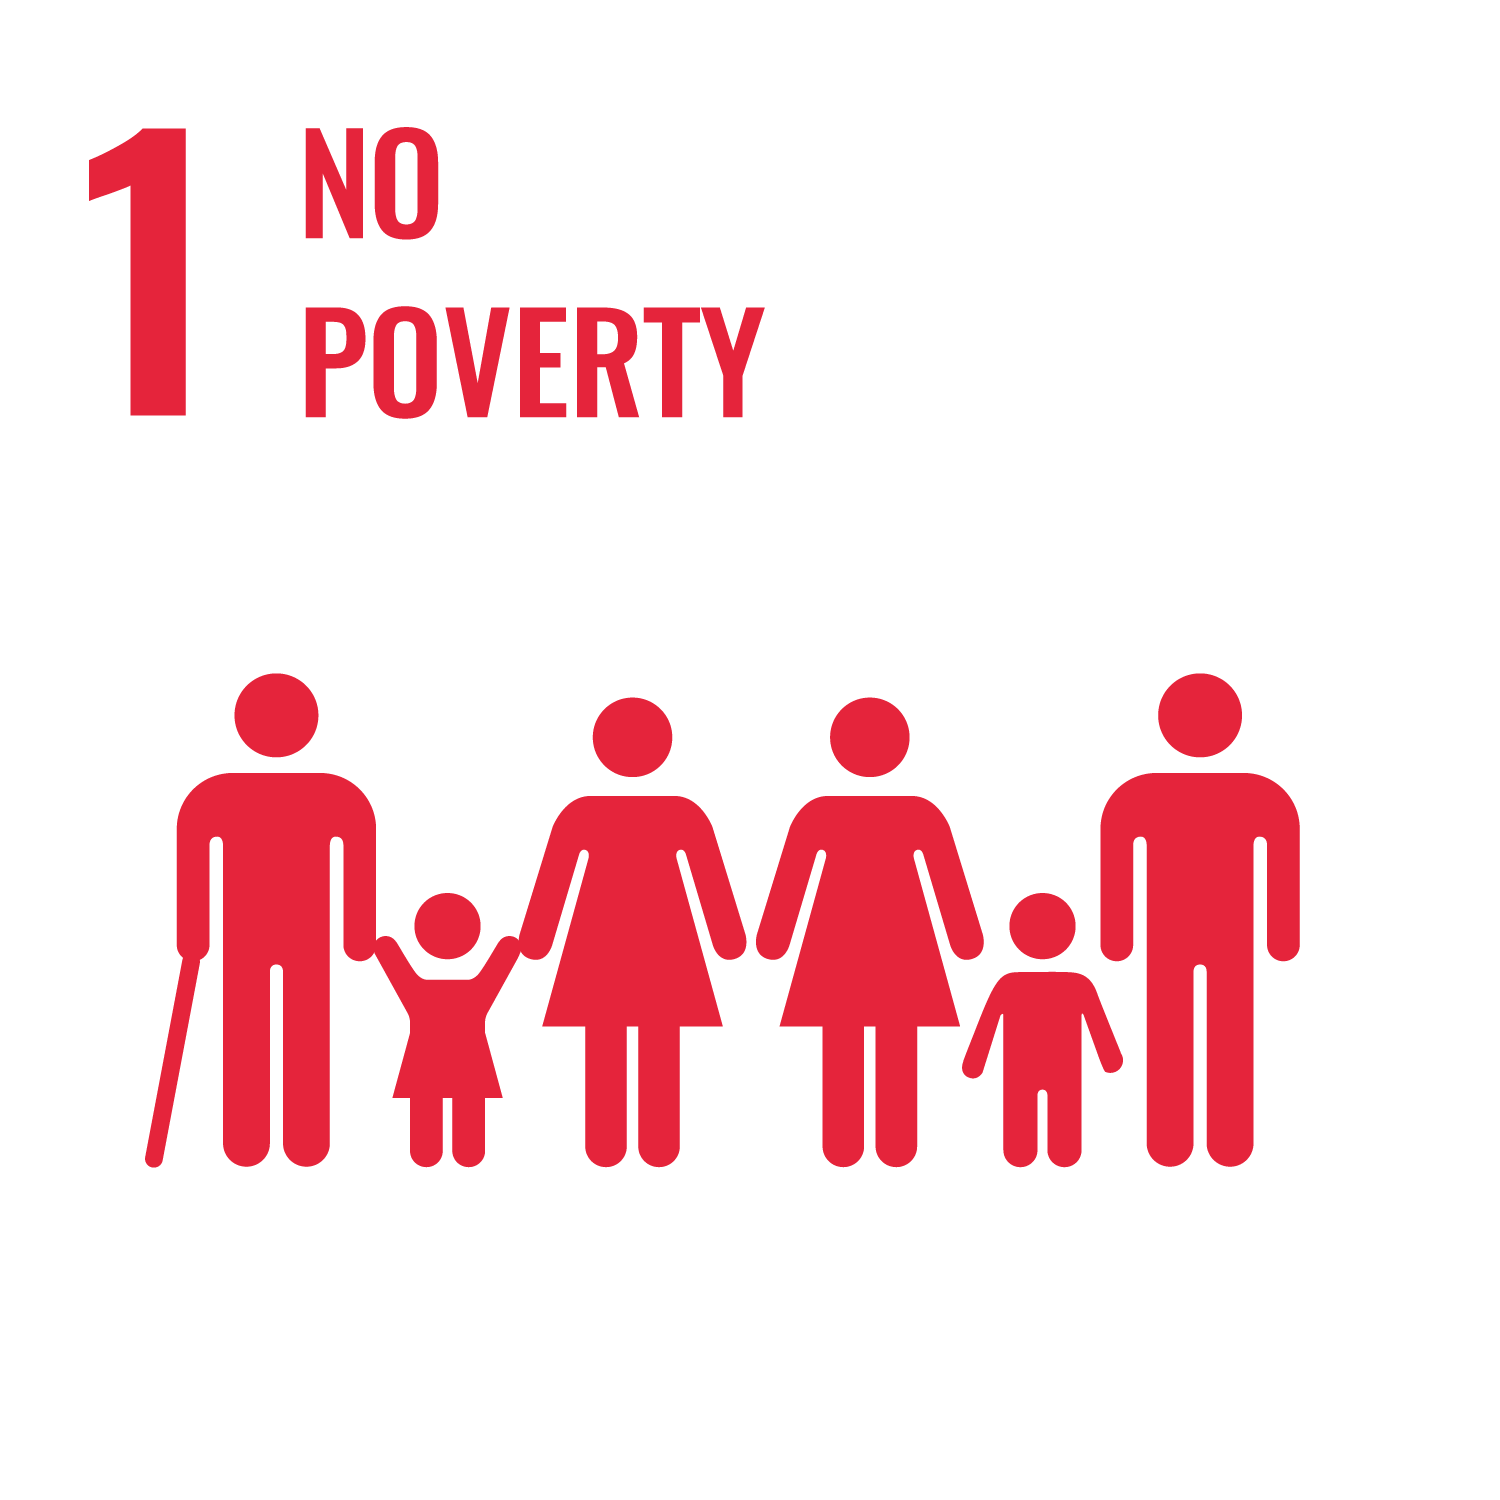 United Nations Sustainable Development Goals - no poverty